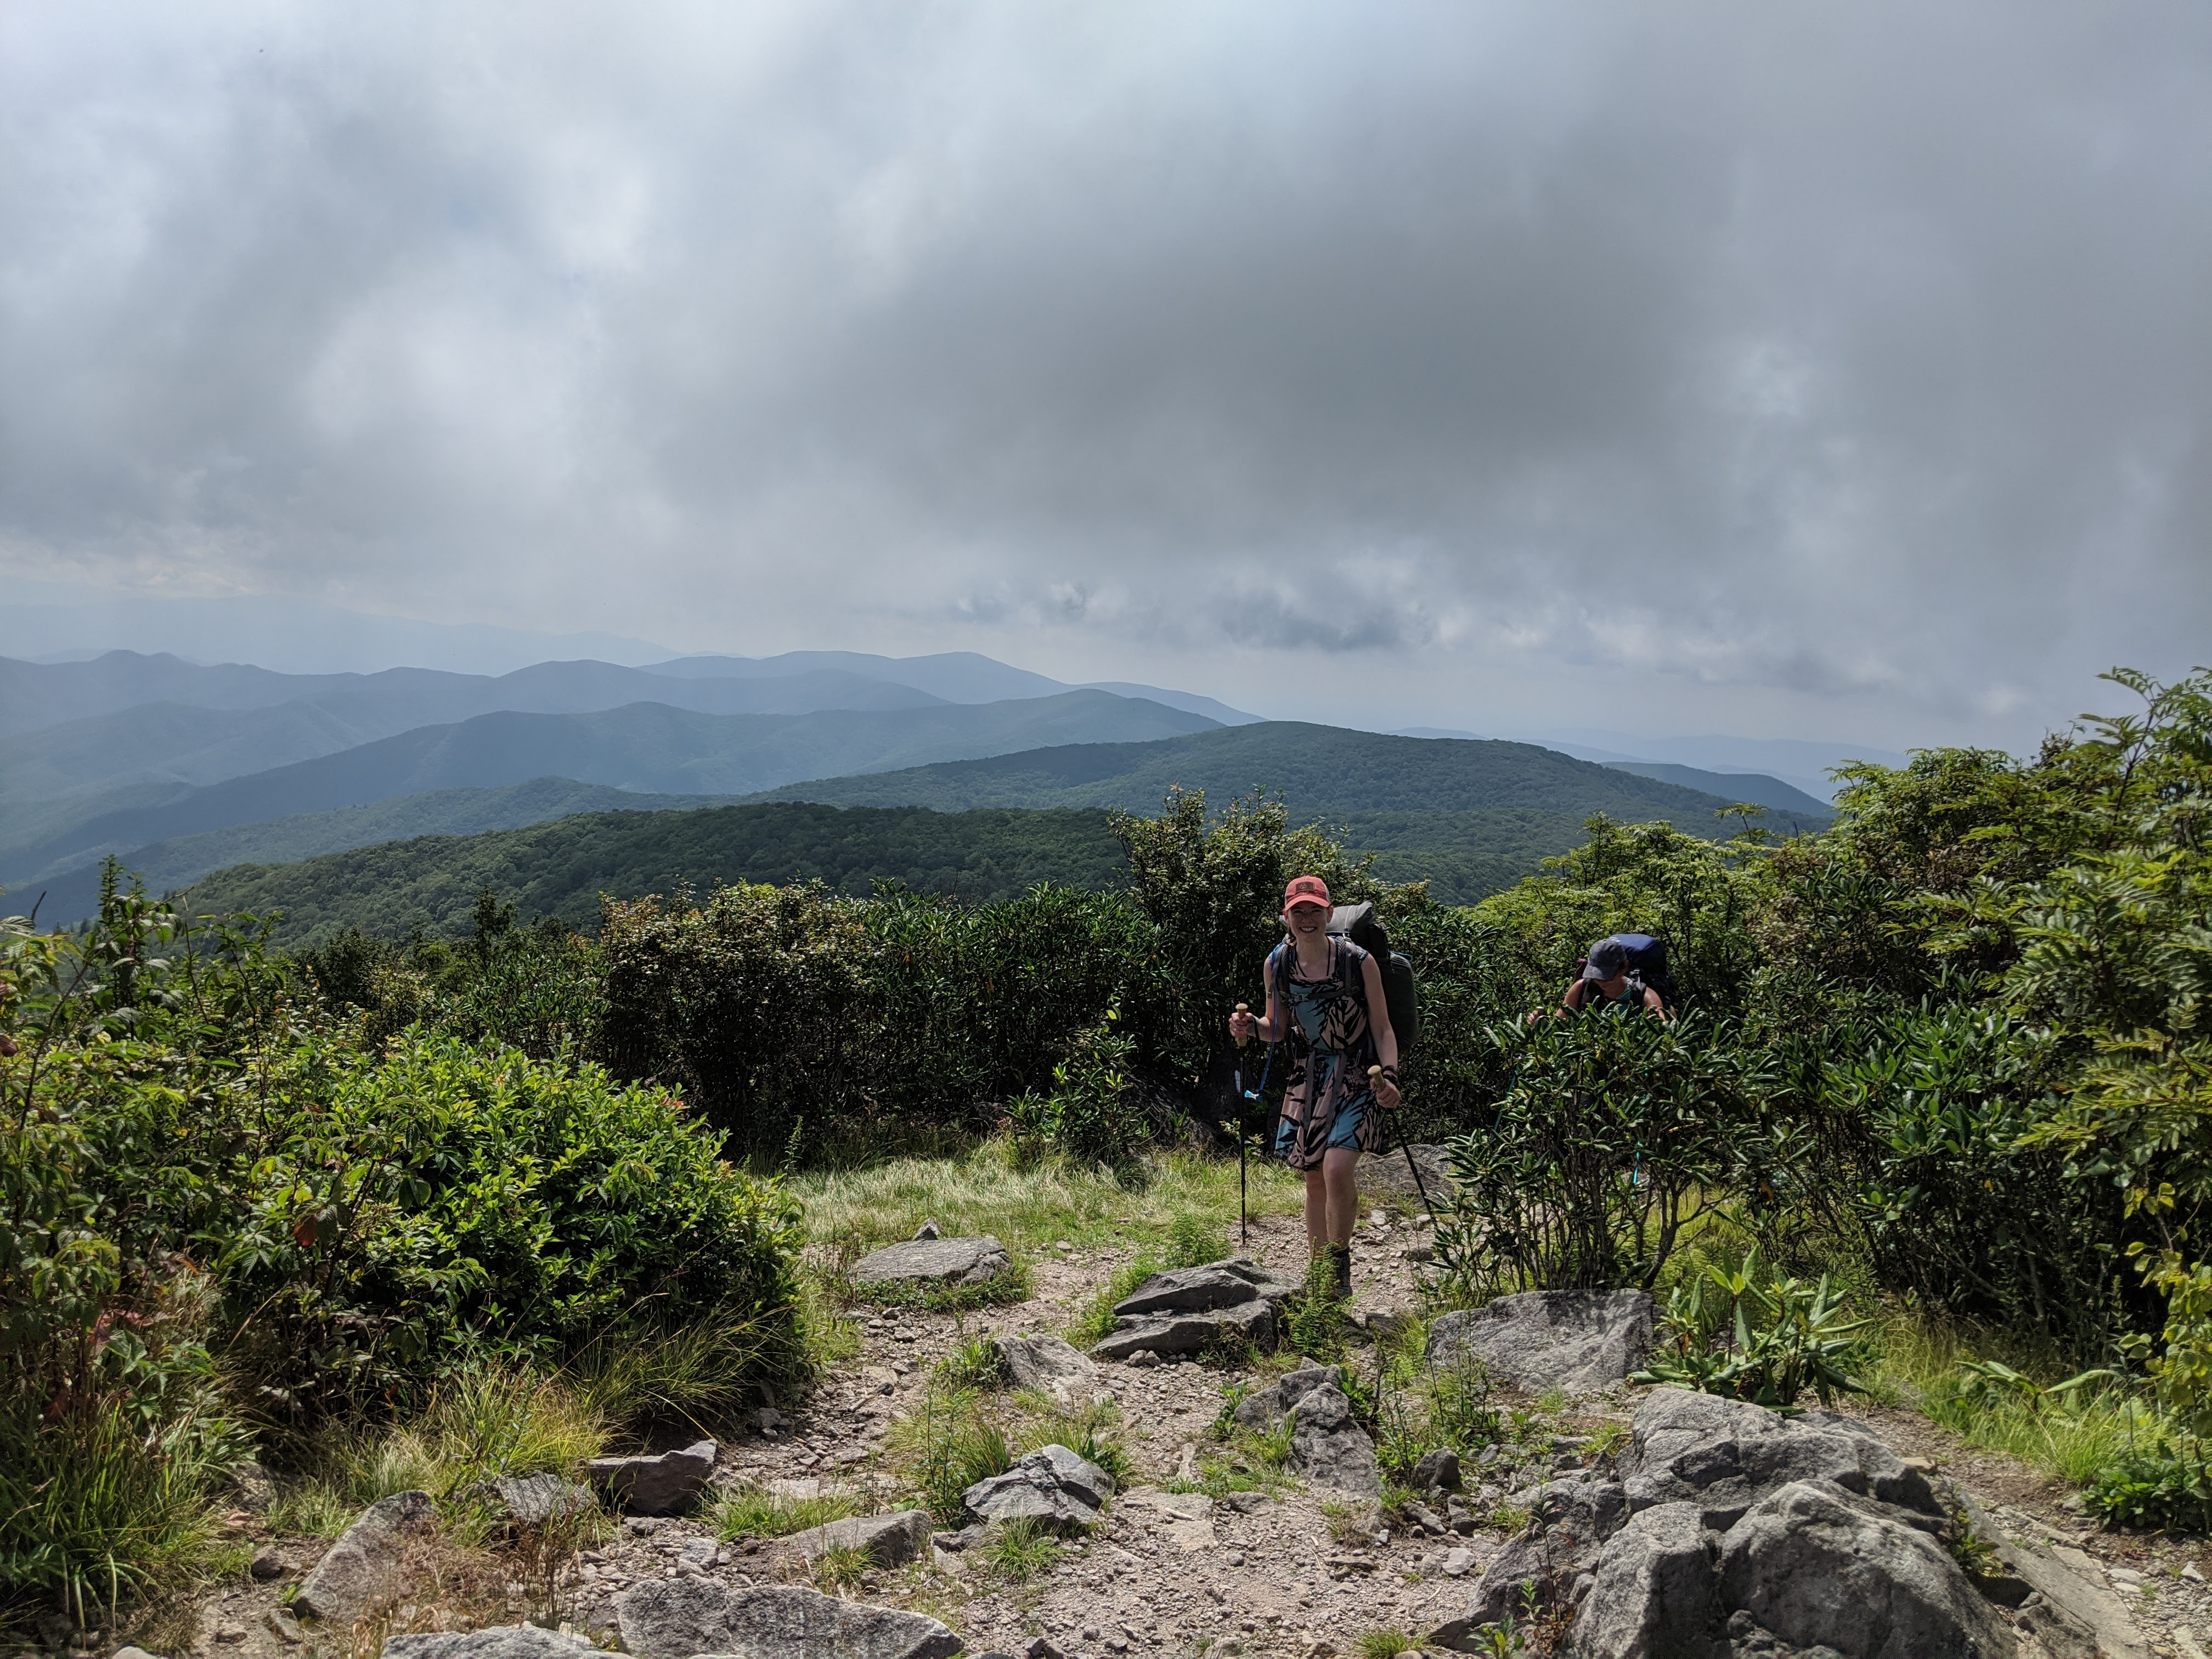 Korrin Bishop, a freelance writer who was drawn to the Smokies after living near other national parks, enjoying habitat at Rocky Top along the Appalachian Trail in GSMNP. Photo courtesy of Stephanie Rockwood.